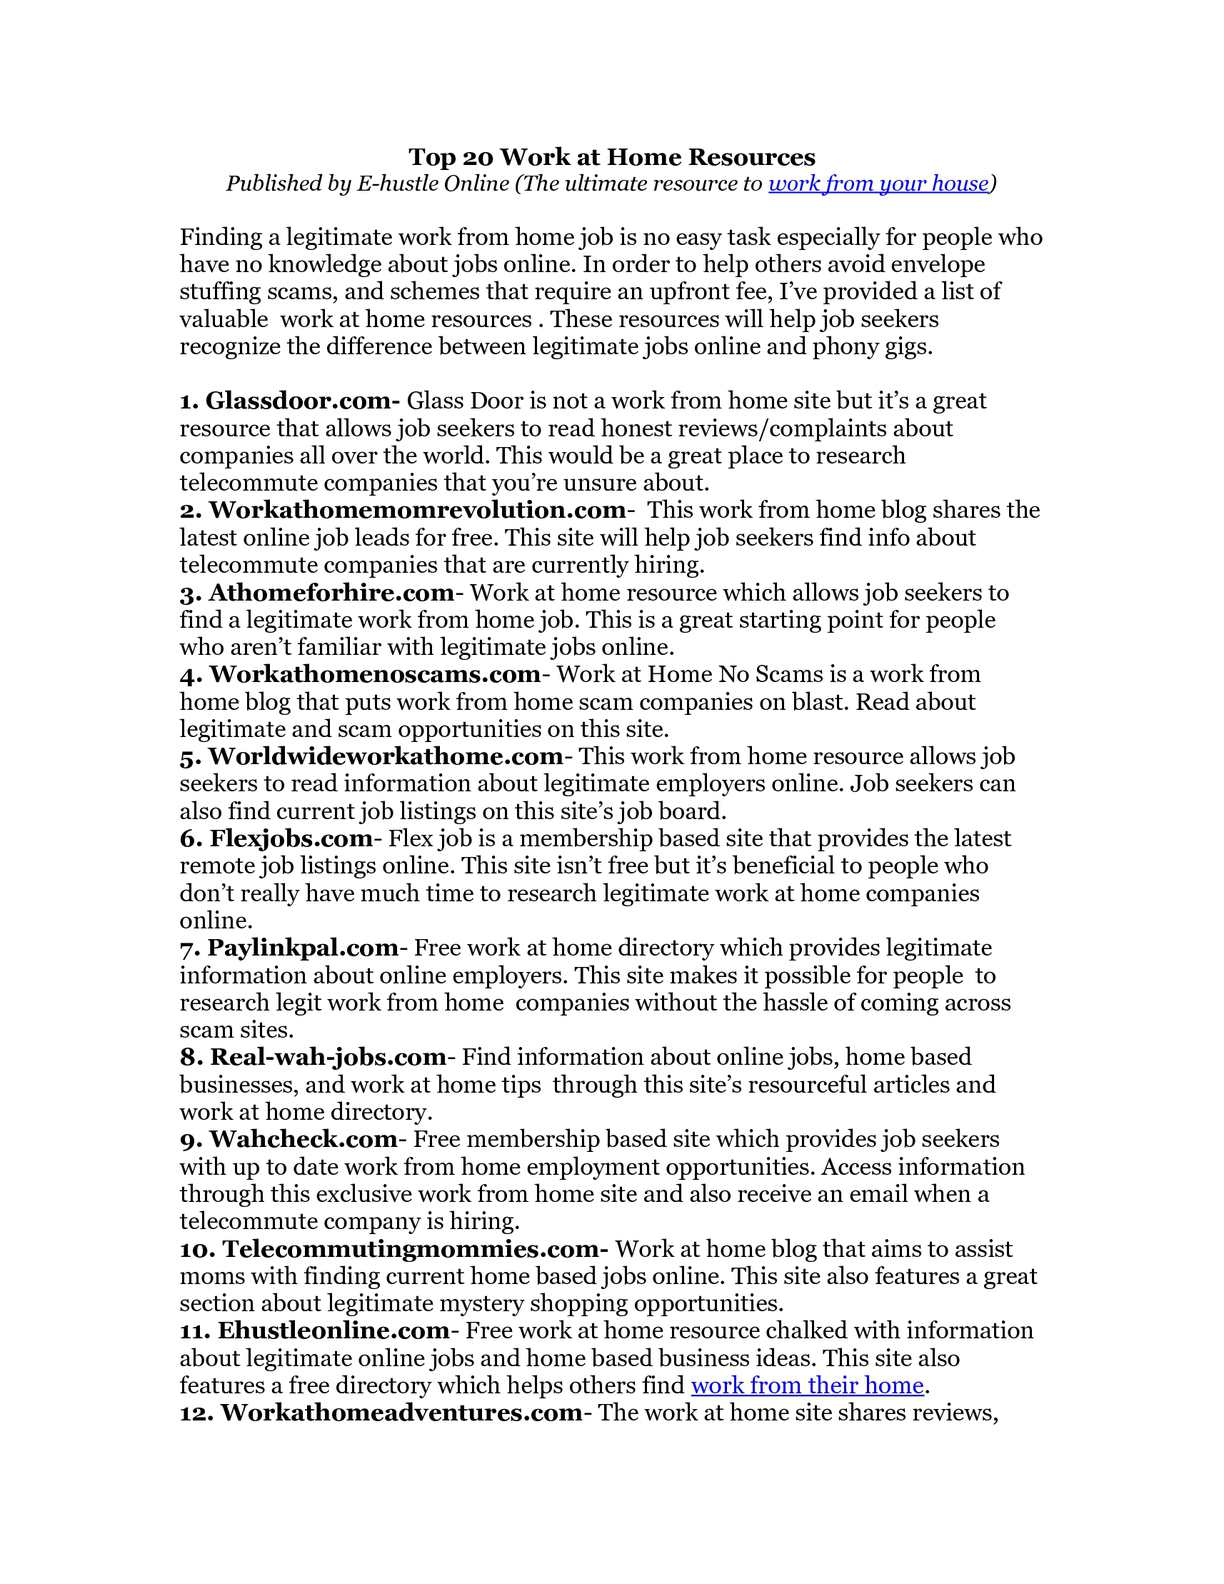 Calaméo - Top 20 Work at Home Websites to Obtain Information